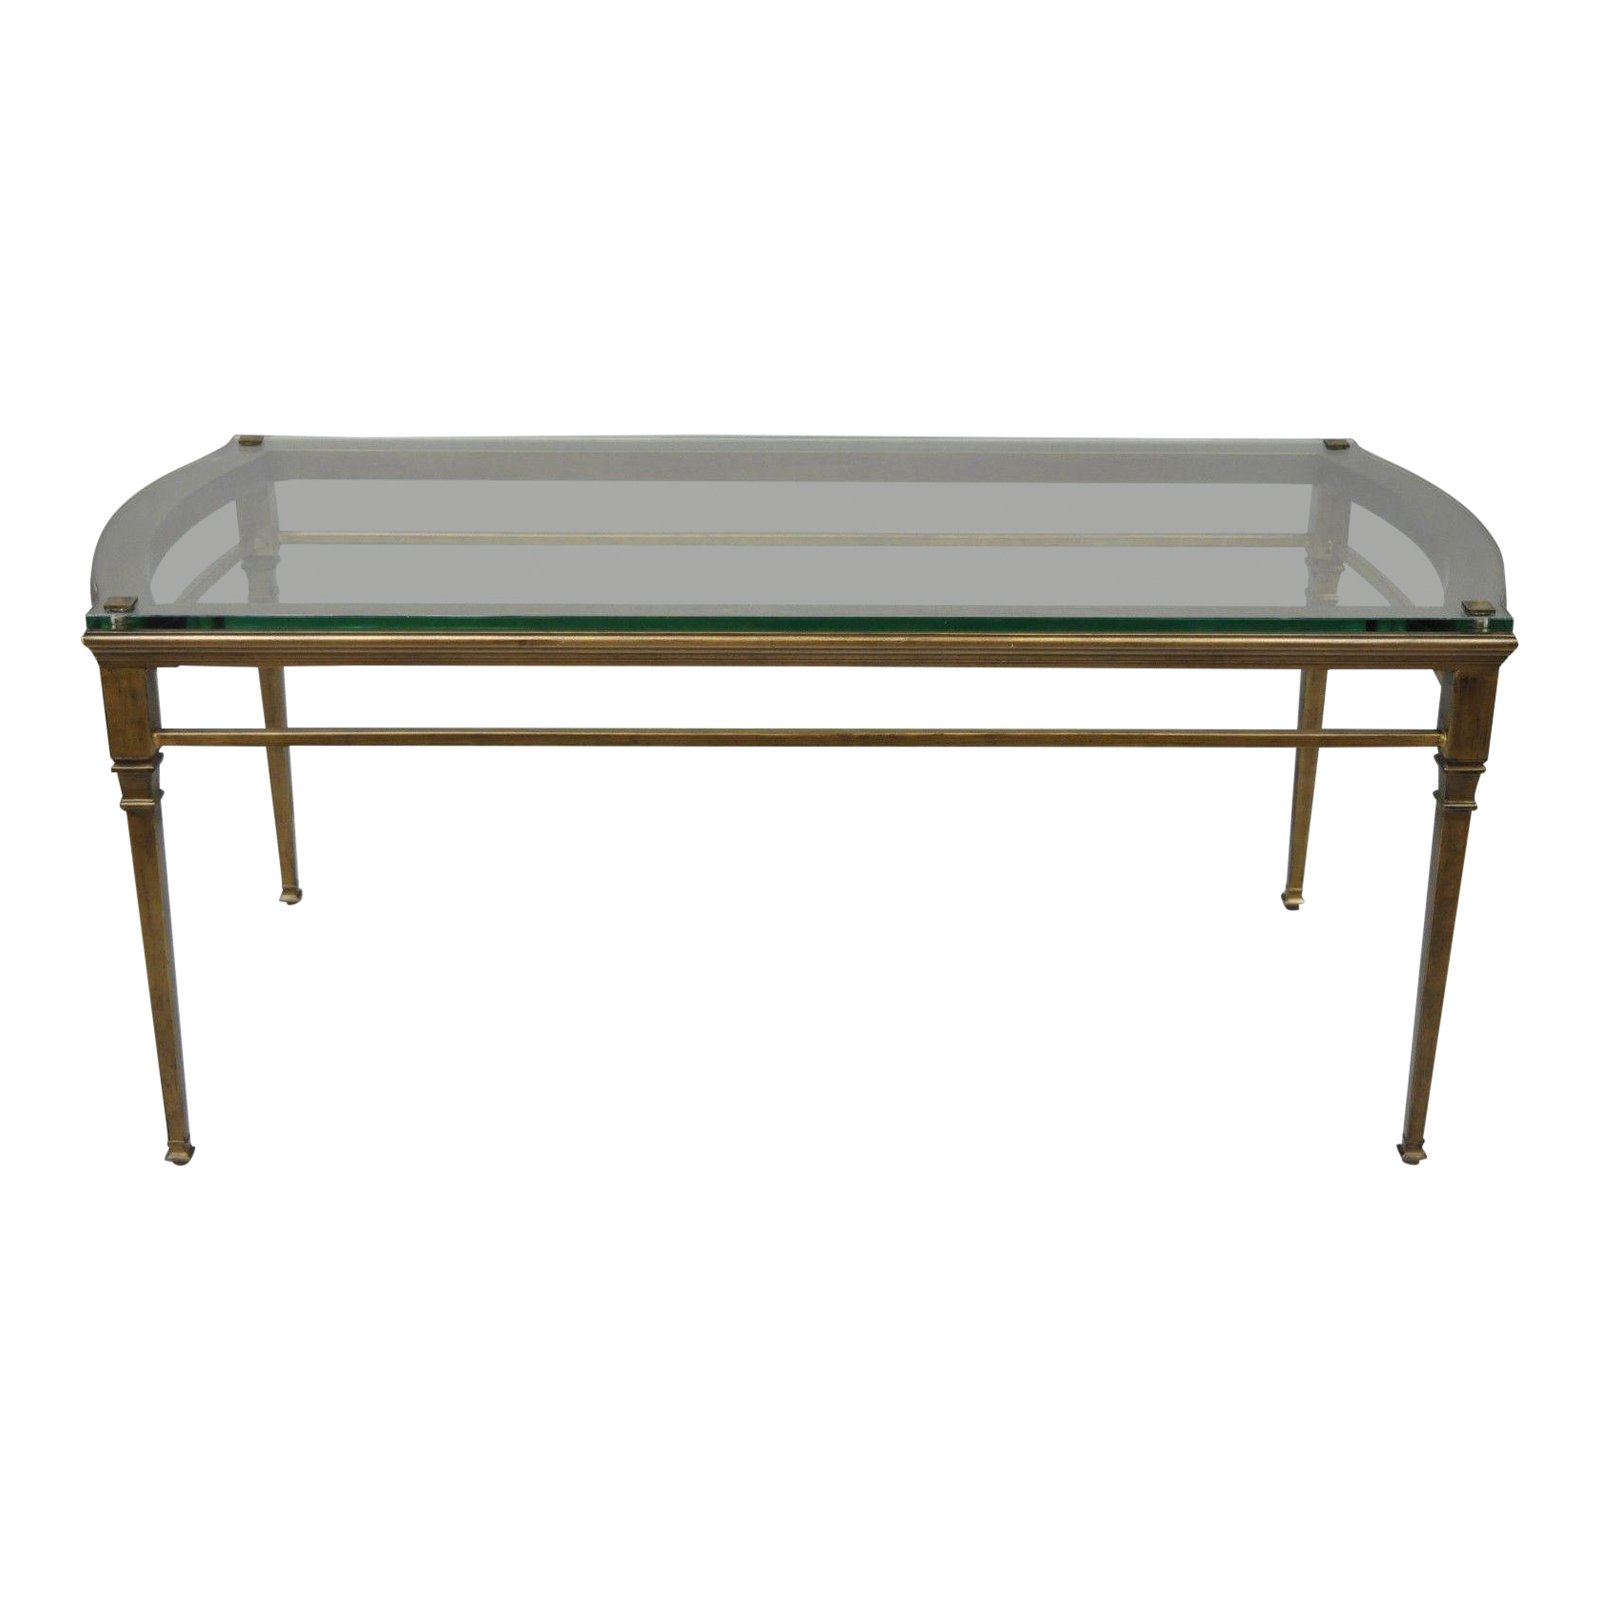 modern bombay company metal glass castleton coffee table chairish and marble top accent hampton bay patio round tablecloth outdoor wicker furniture sets clearance rustic living